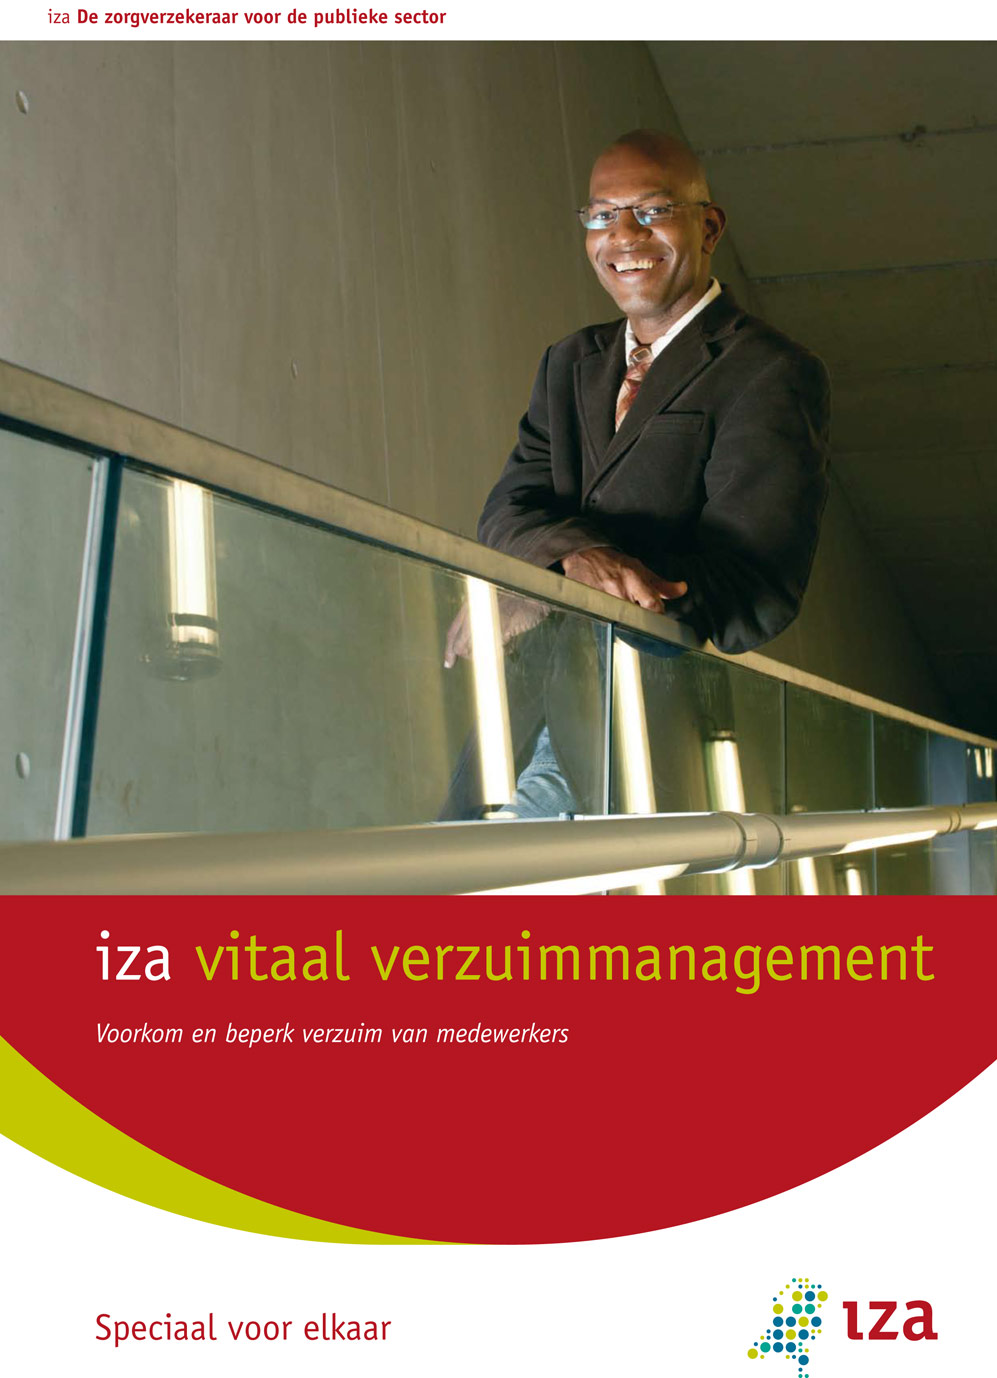 IZA_Verzuimmanagement_web-1.jpg